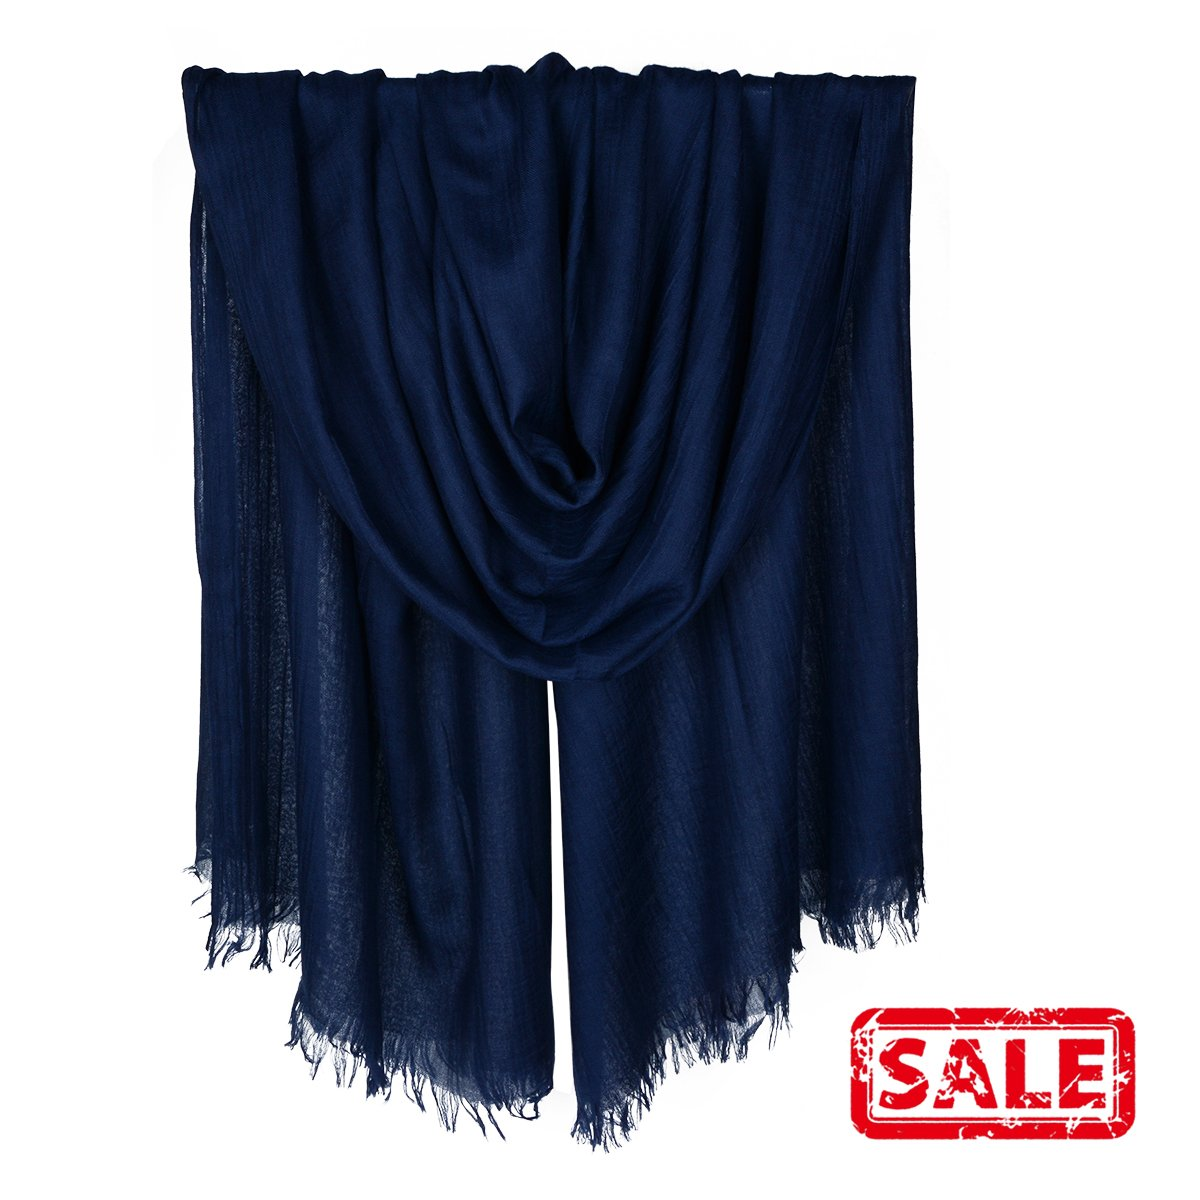 Iristide Womens Long Scarf in Solid Color, Light Weight Large Shawls Wrap for Beach Outdoor Camping Traveling Sunscreen Neckwear 75×43 inch (Navy)